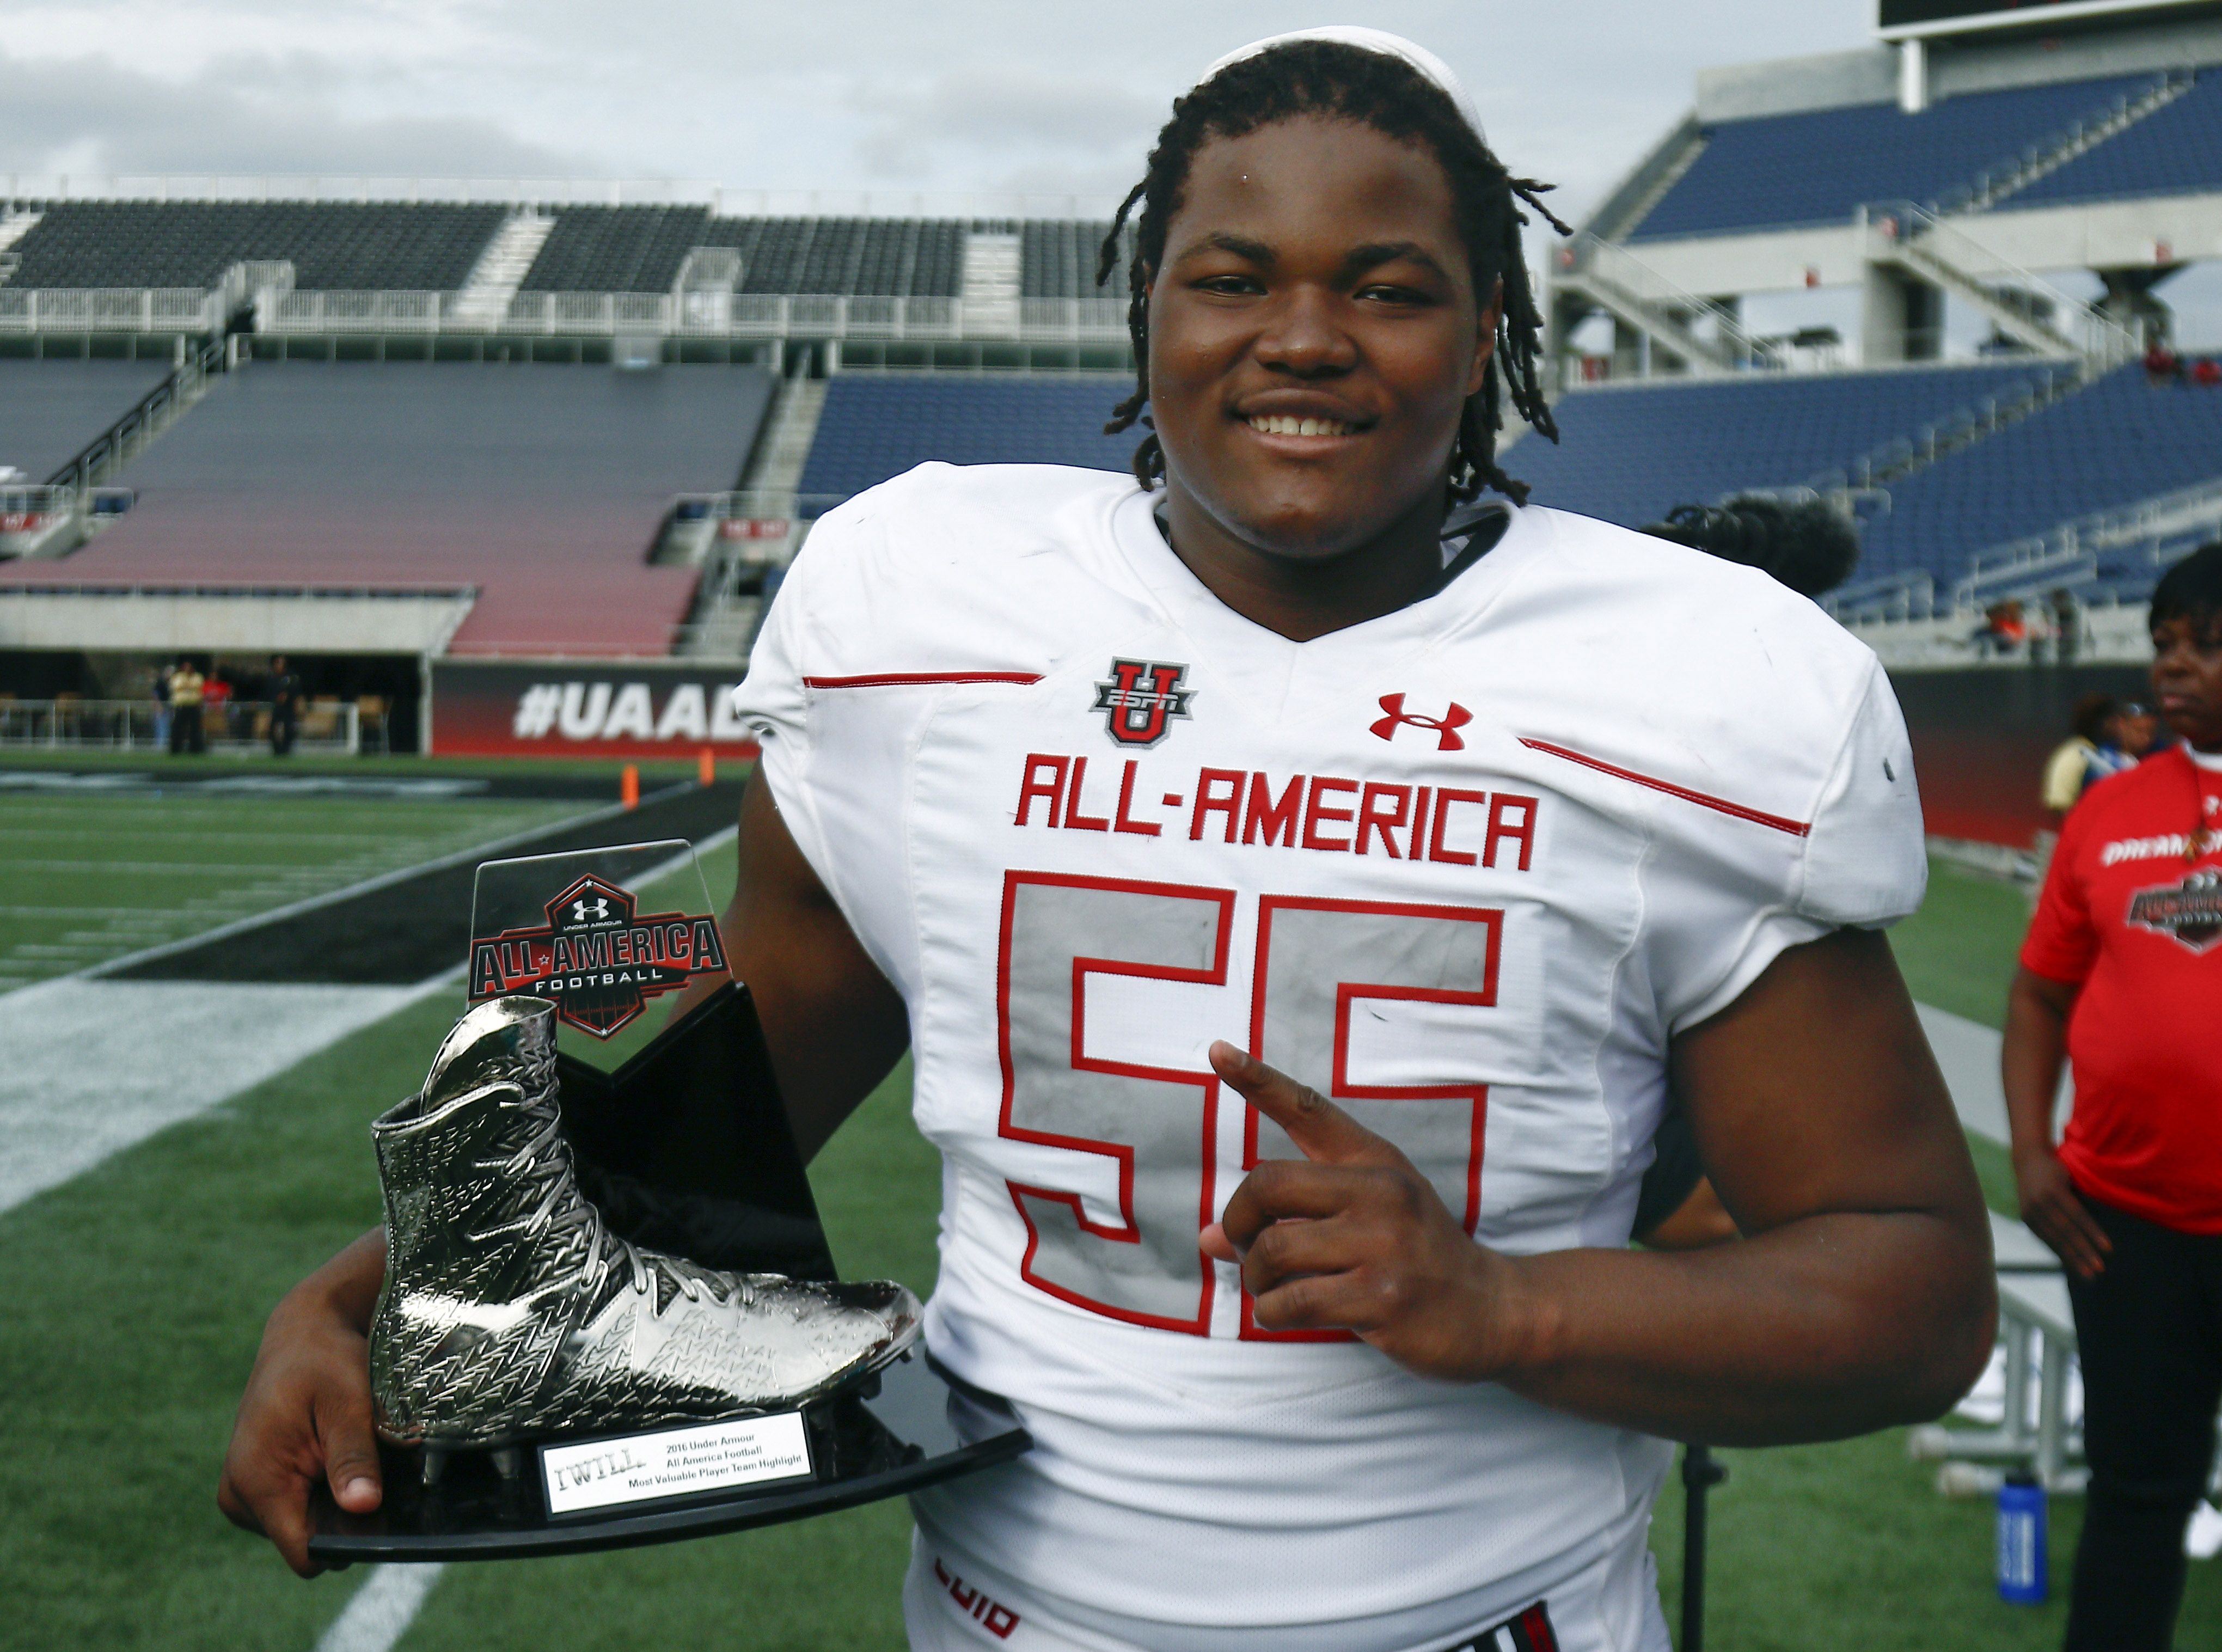 Rashan Gary won the MVP trophy for Team Highlight at the Under Armour All-American Game. (Photo: Reinhold Matay, USA TODAY Sports)